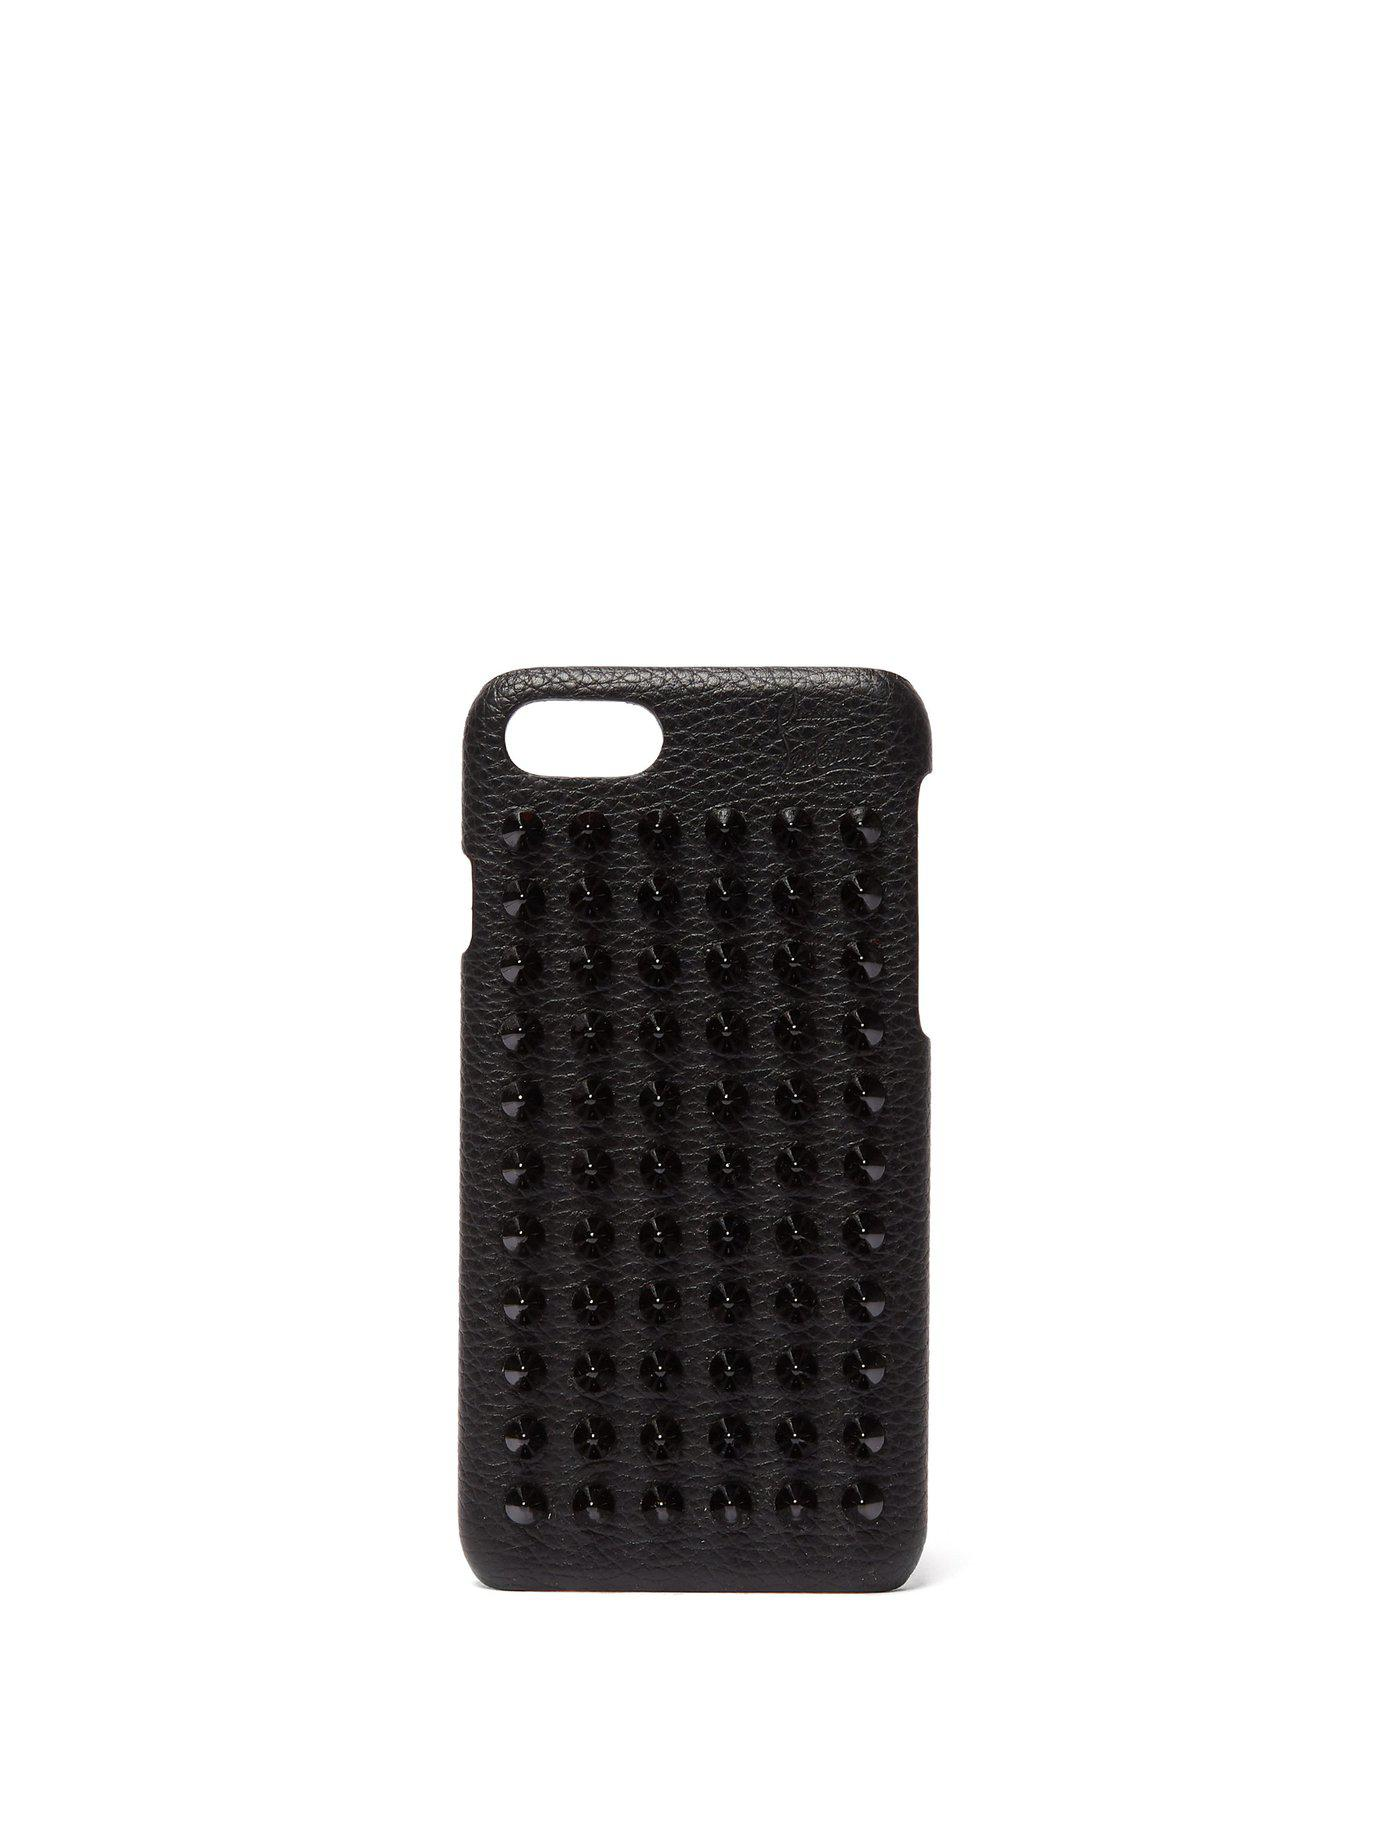 bb9ab6eef59 Christian Louboutin - Loubiphone Leather Iphone 7 And 8 Case ...